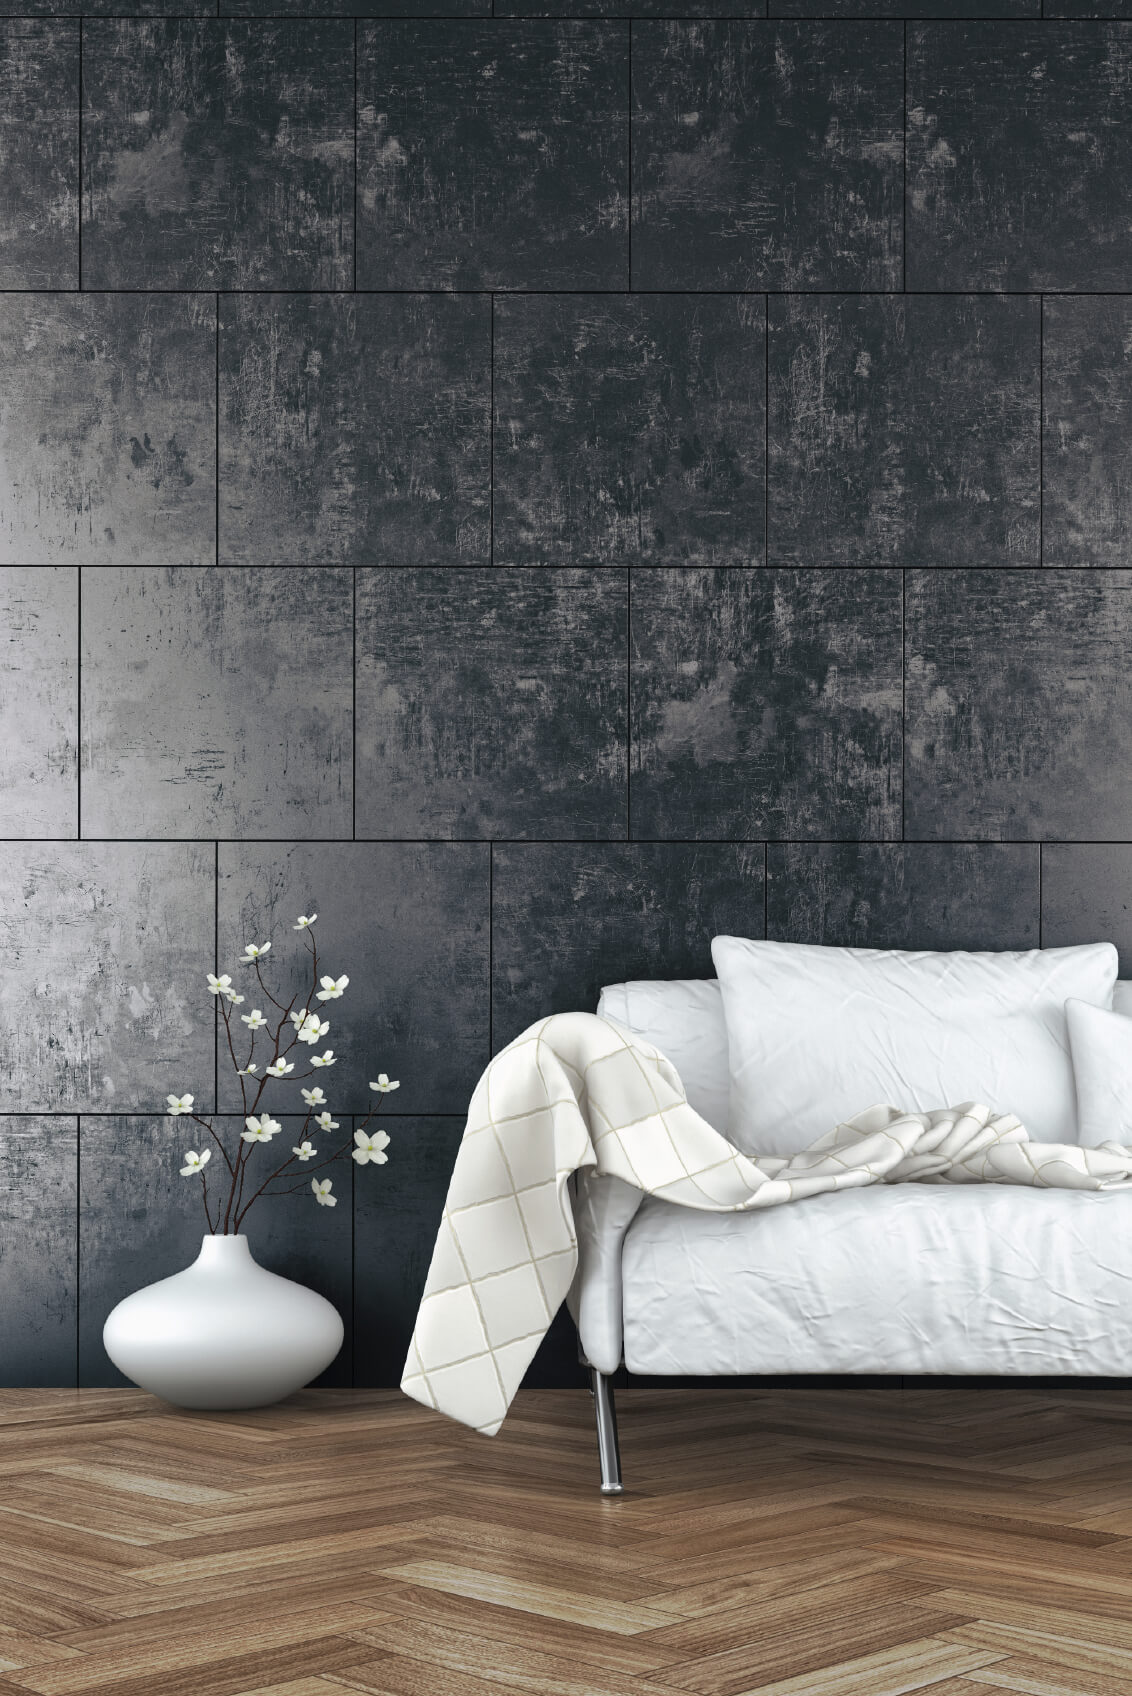 Here is an example of an interesting tiled wall. Tiles add fantastic texture to a space, and can be arranged in interesting patterns.